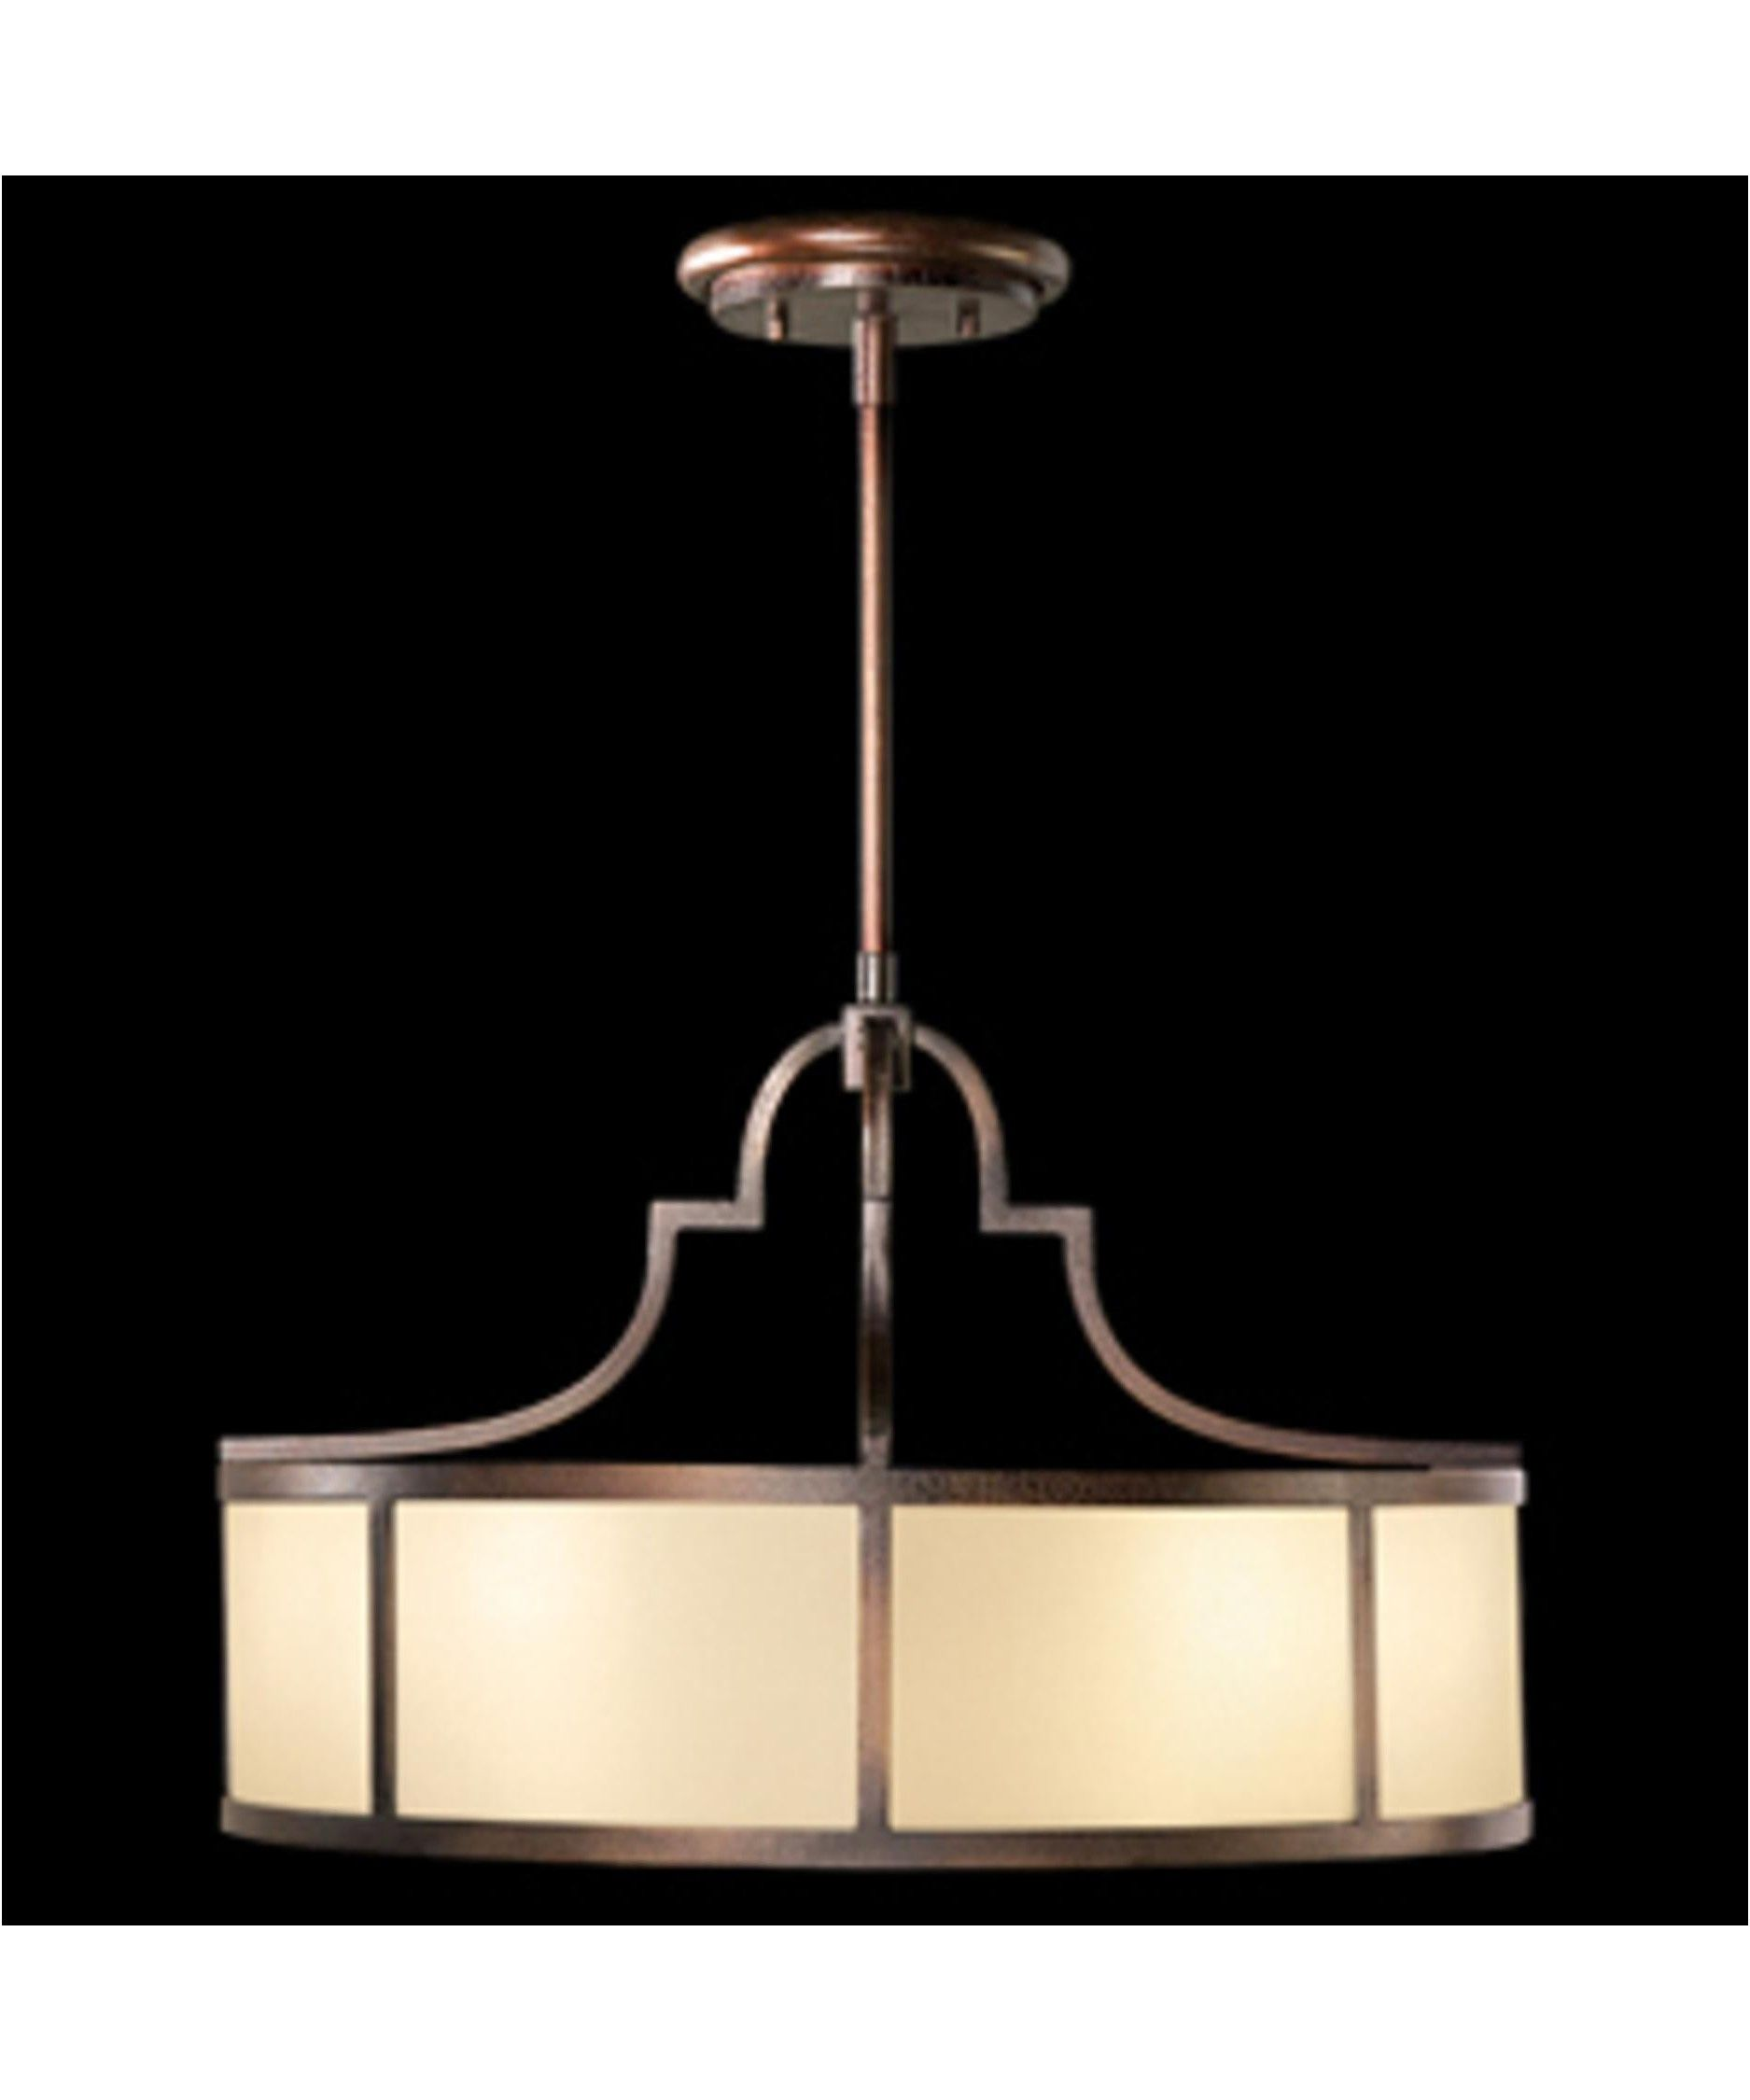 Victorian bathroom lighting fixtures uk interiordesignew from bathroom light fixtures uk